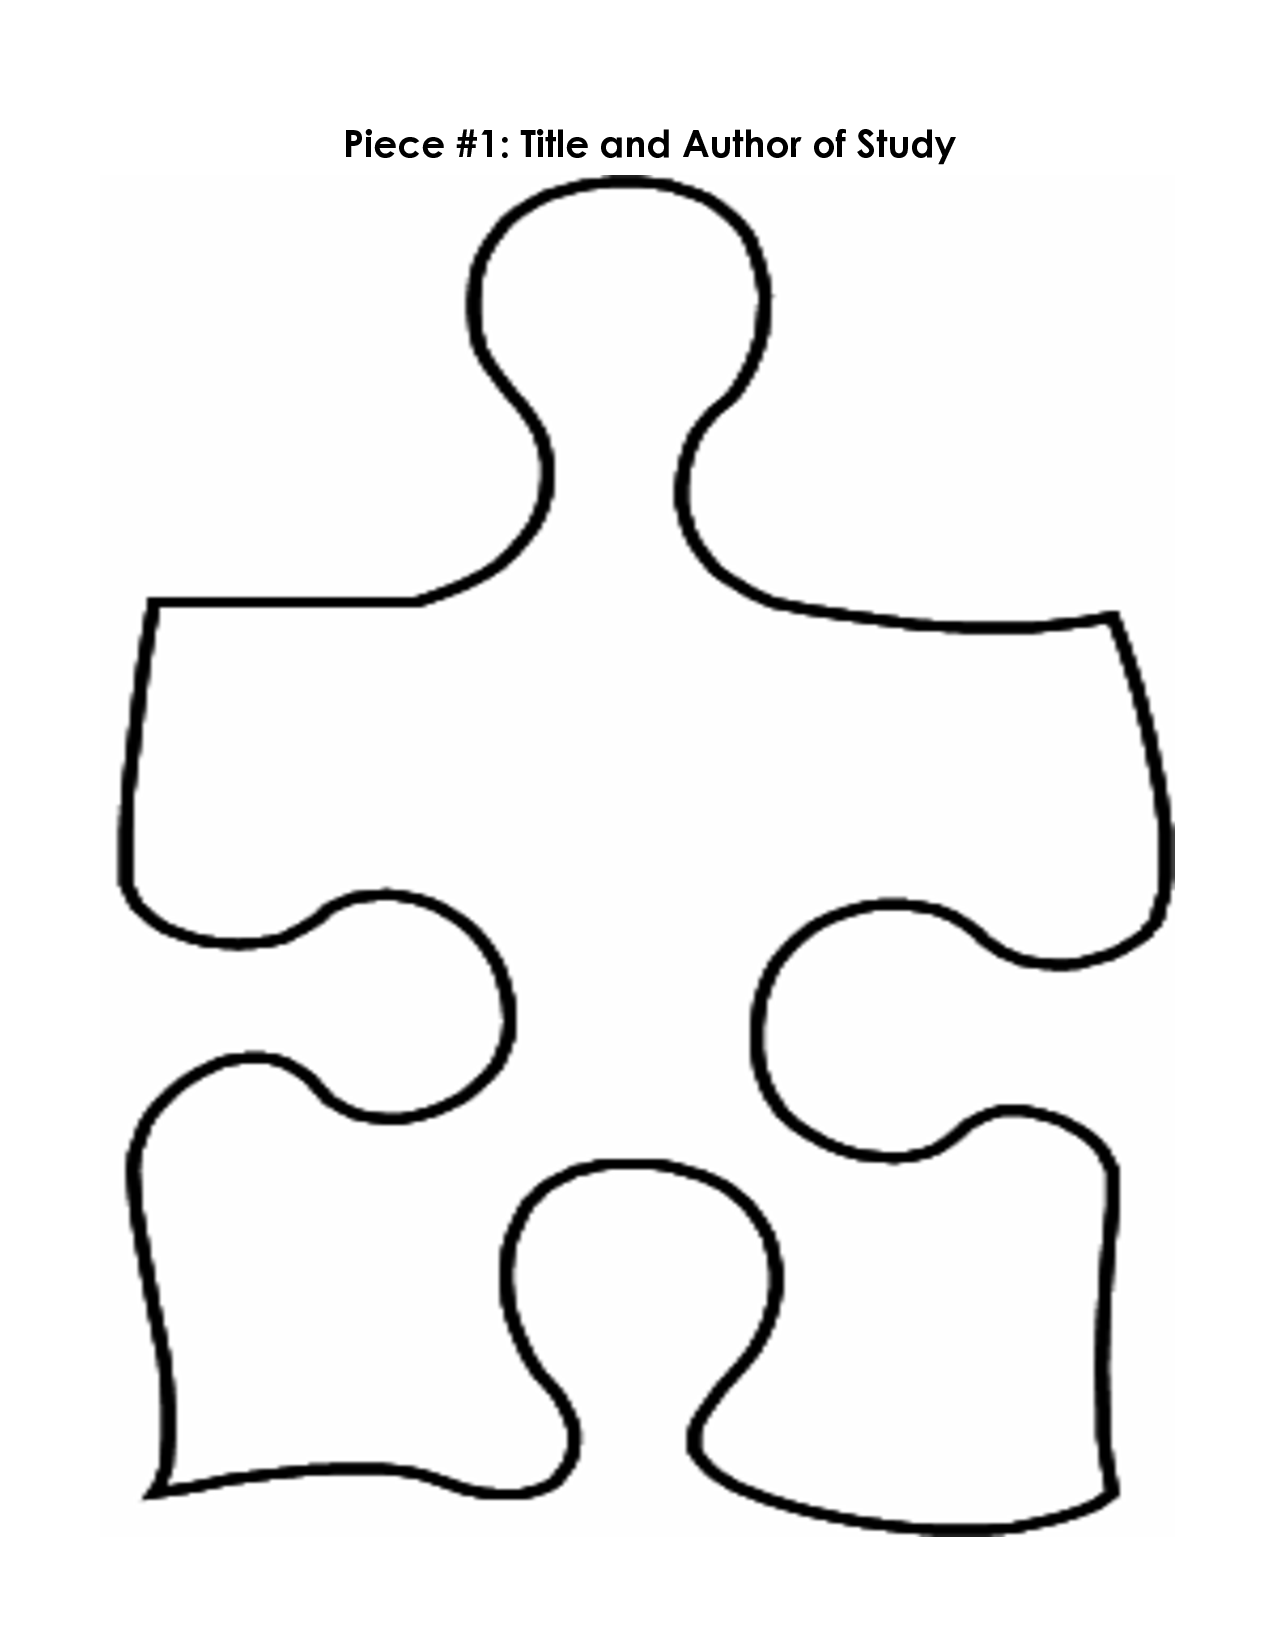 Free Large Puzzle Piece Template Download Free Clip Art